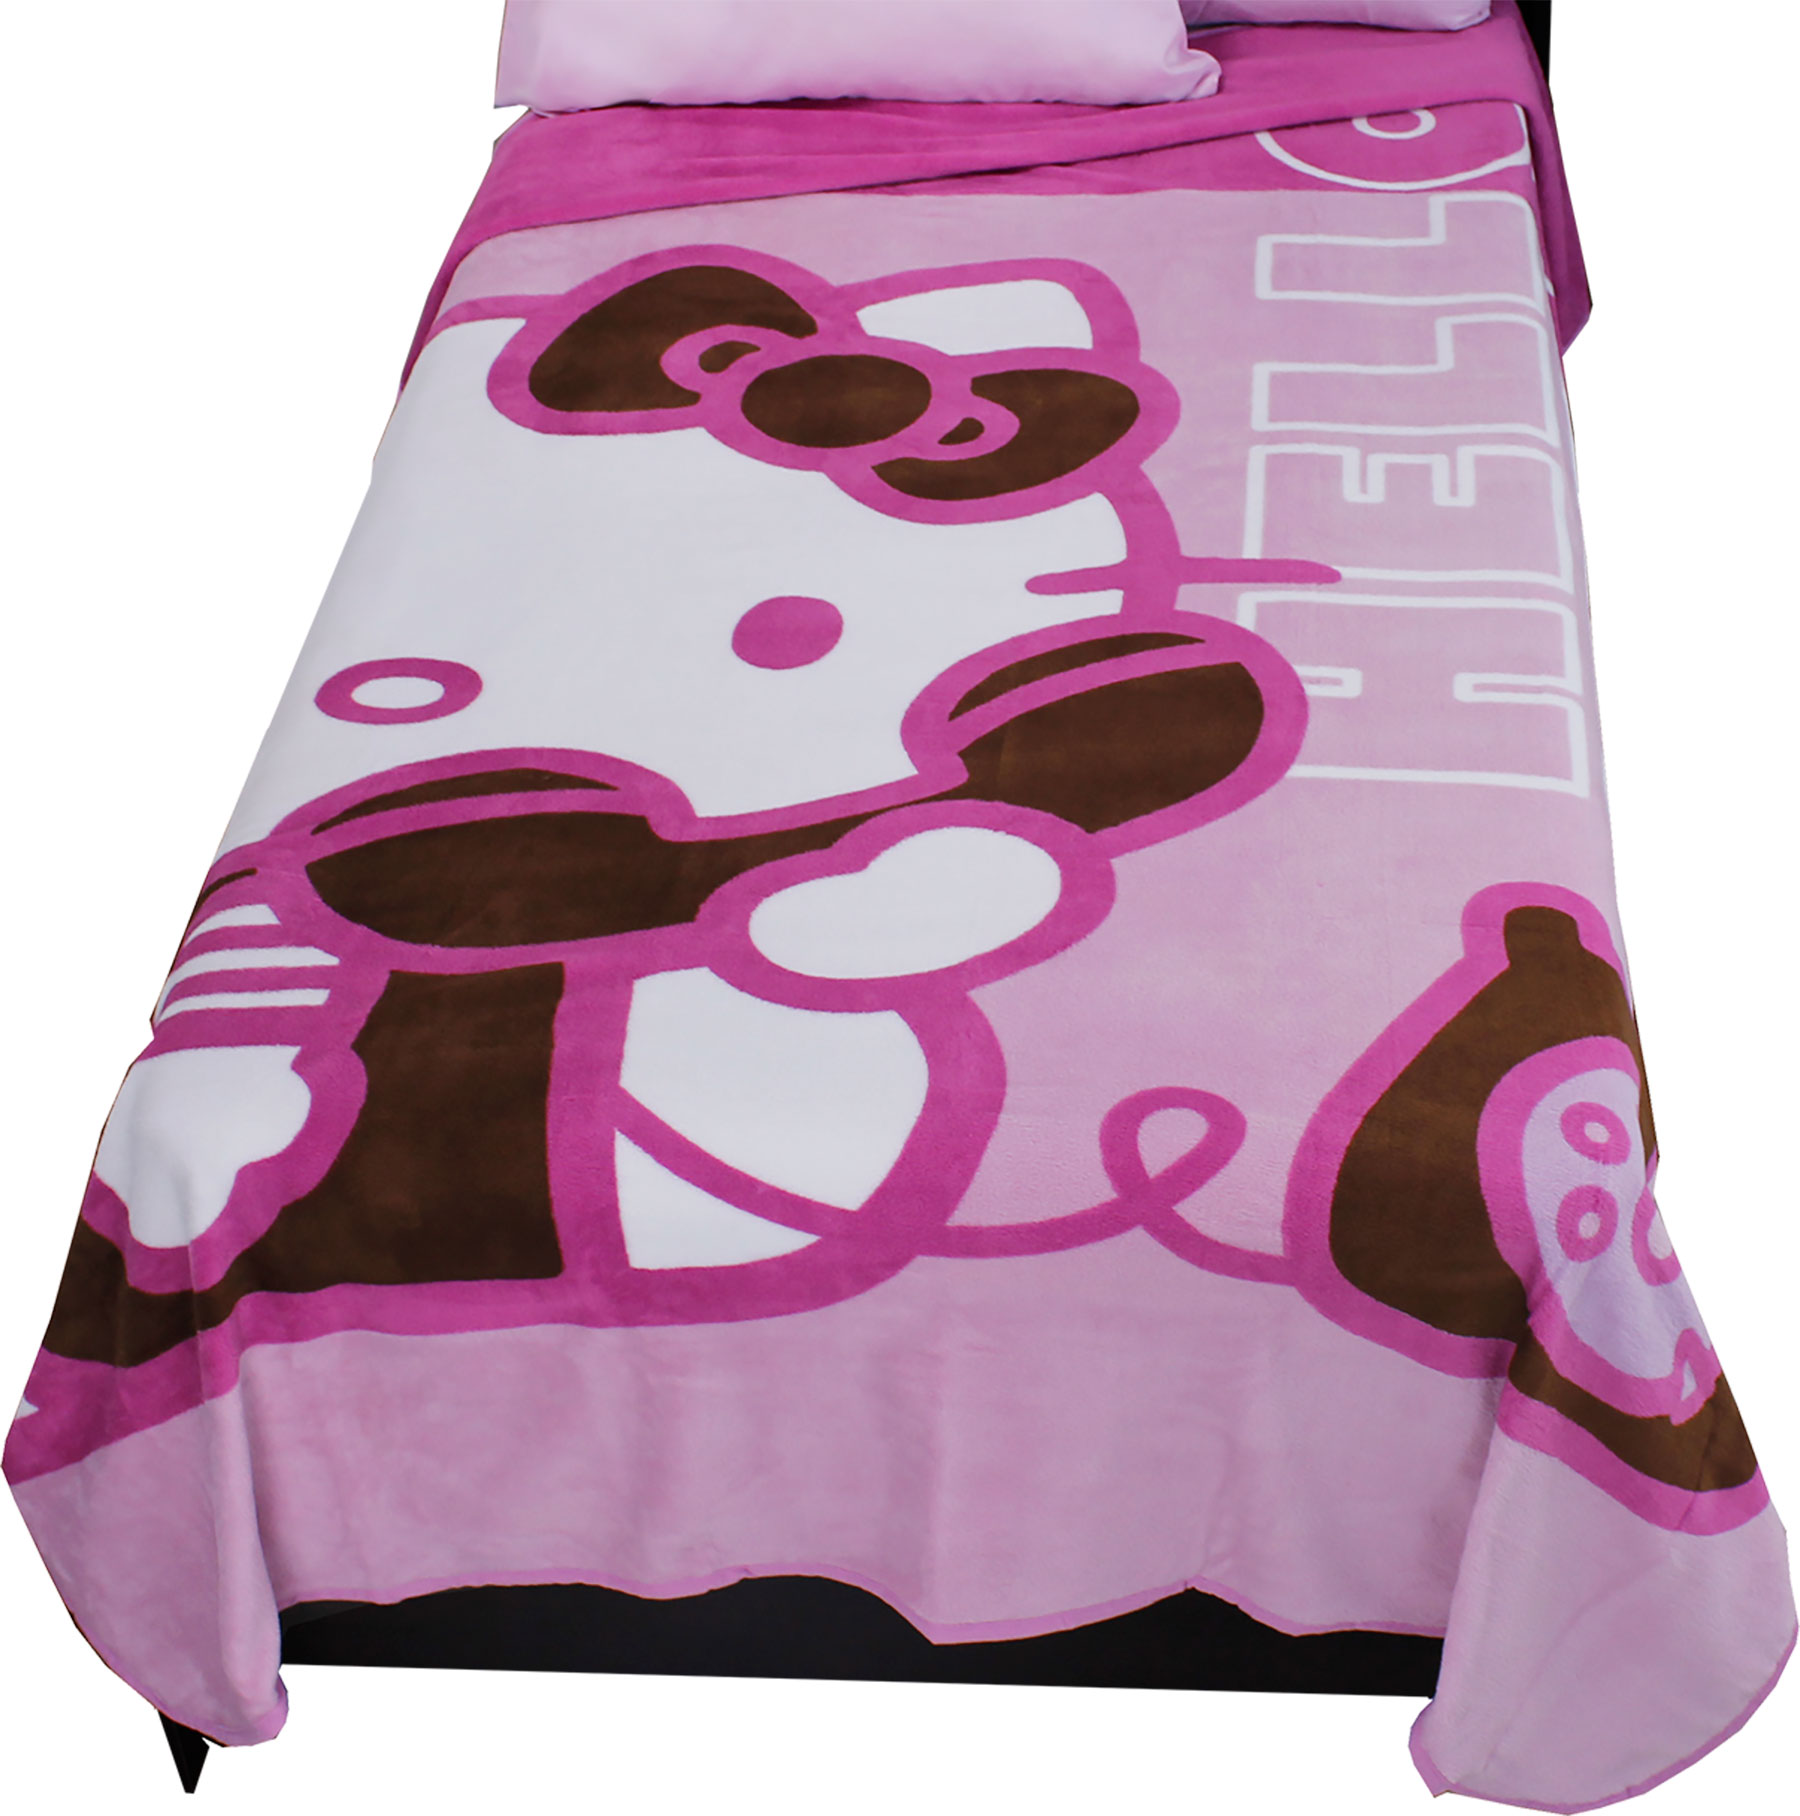 25972fe9a5 Sanrio Hello Kitty Twin Blanket Ring Ring Telephone Bedding Cover